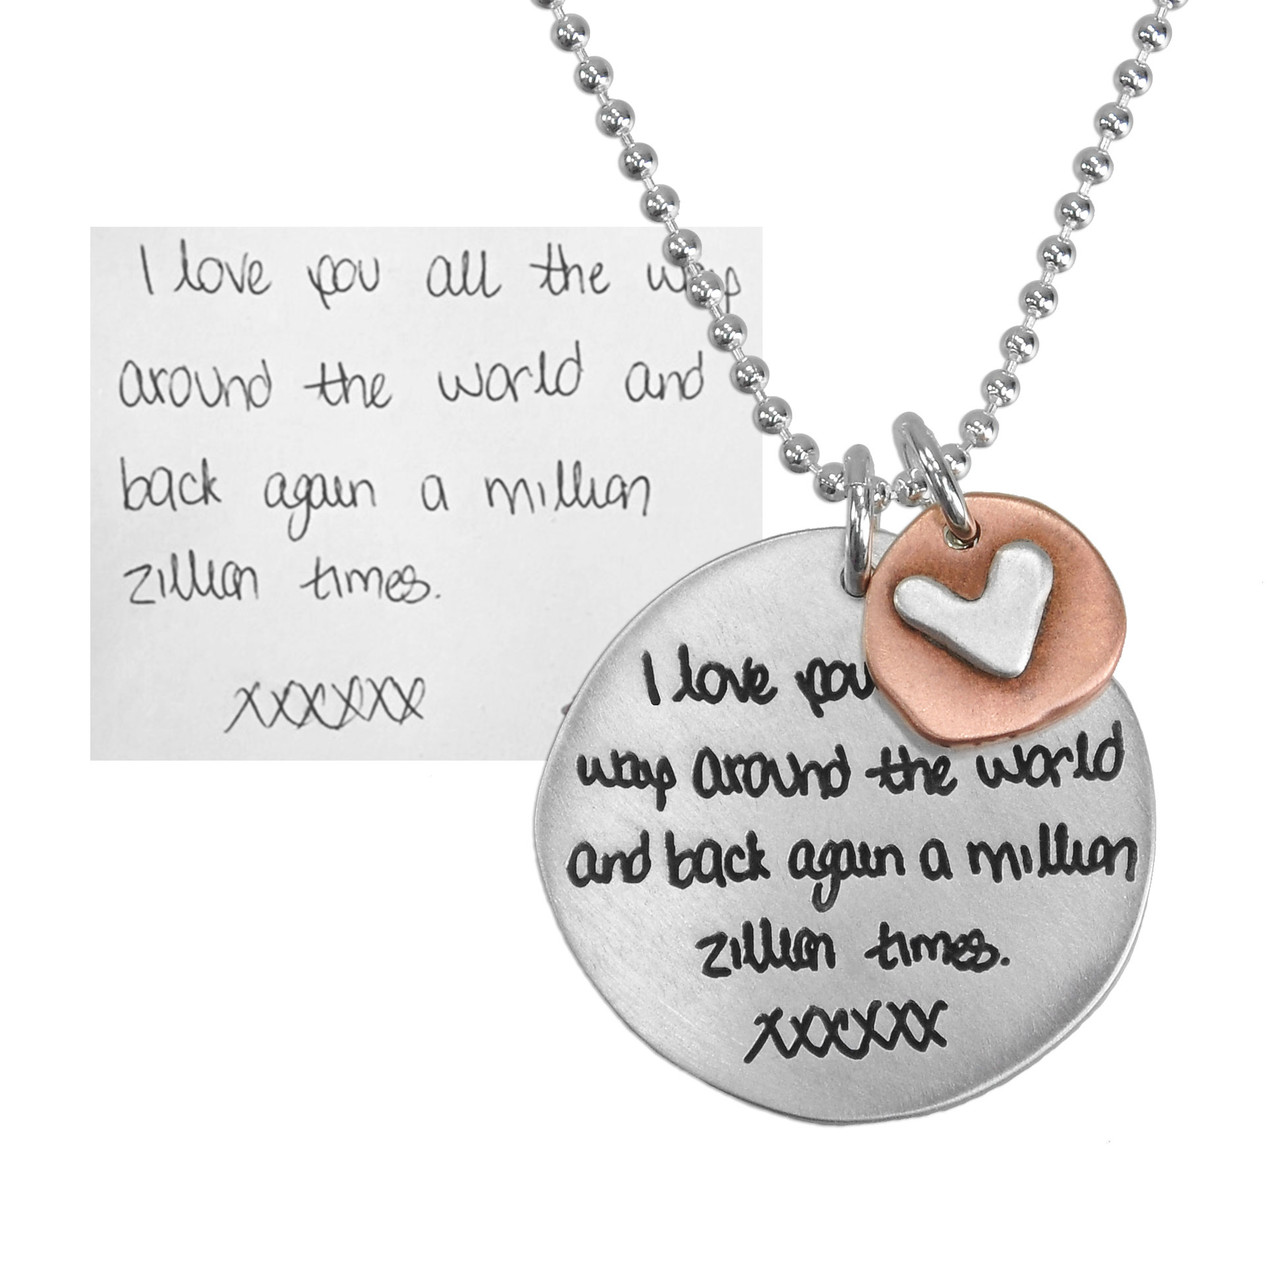 Memorial handwriting jewelry necklace in silver, shown with original writing